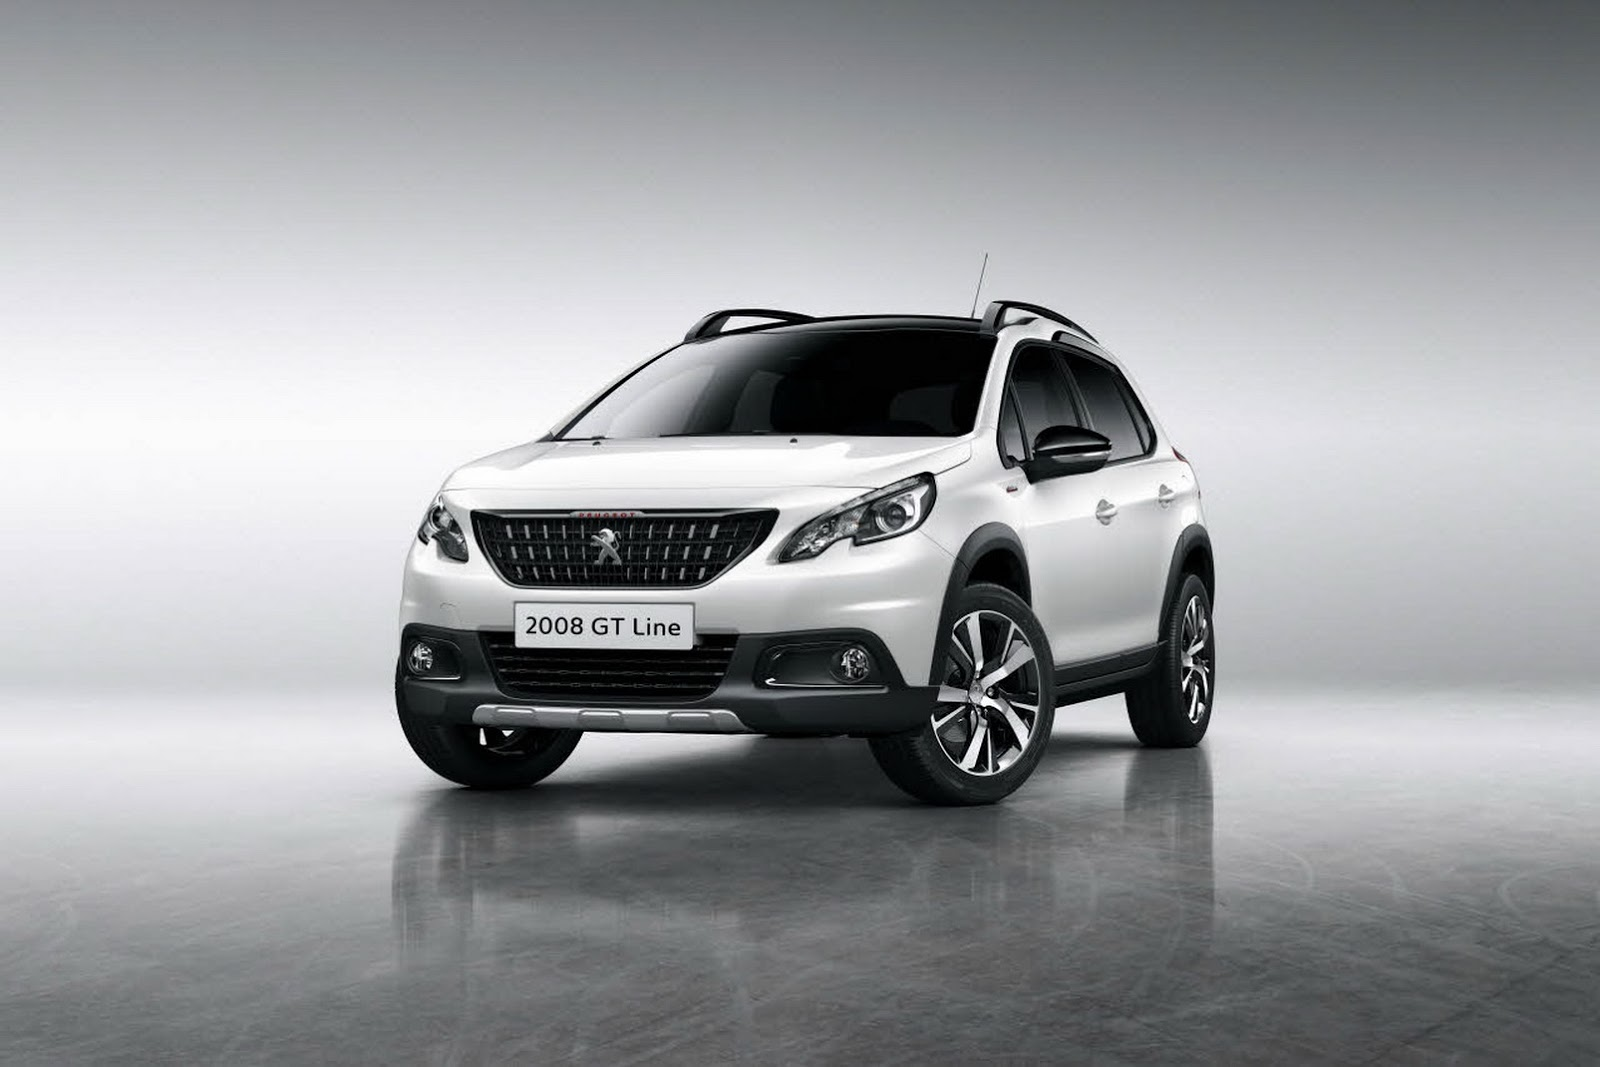 2016 Peugeot 2008 Facelift Doesn't Look Half Bad